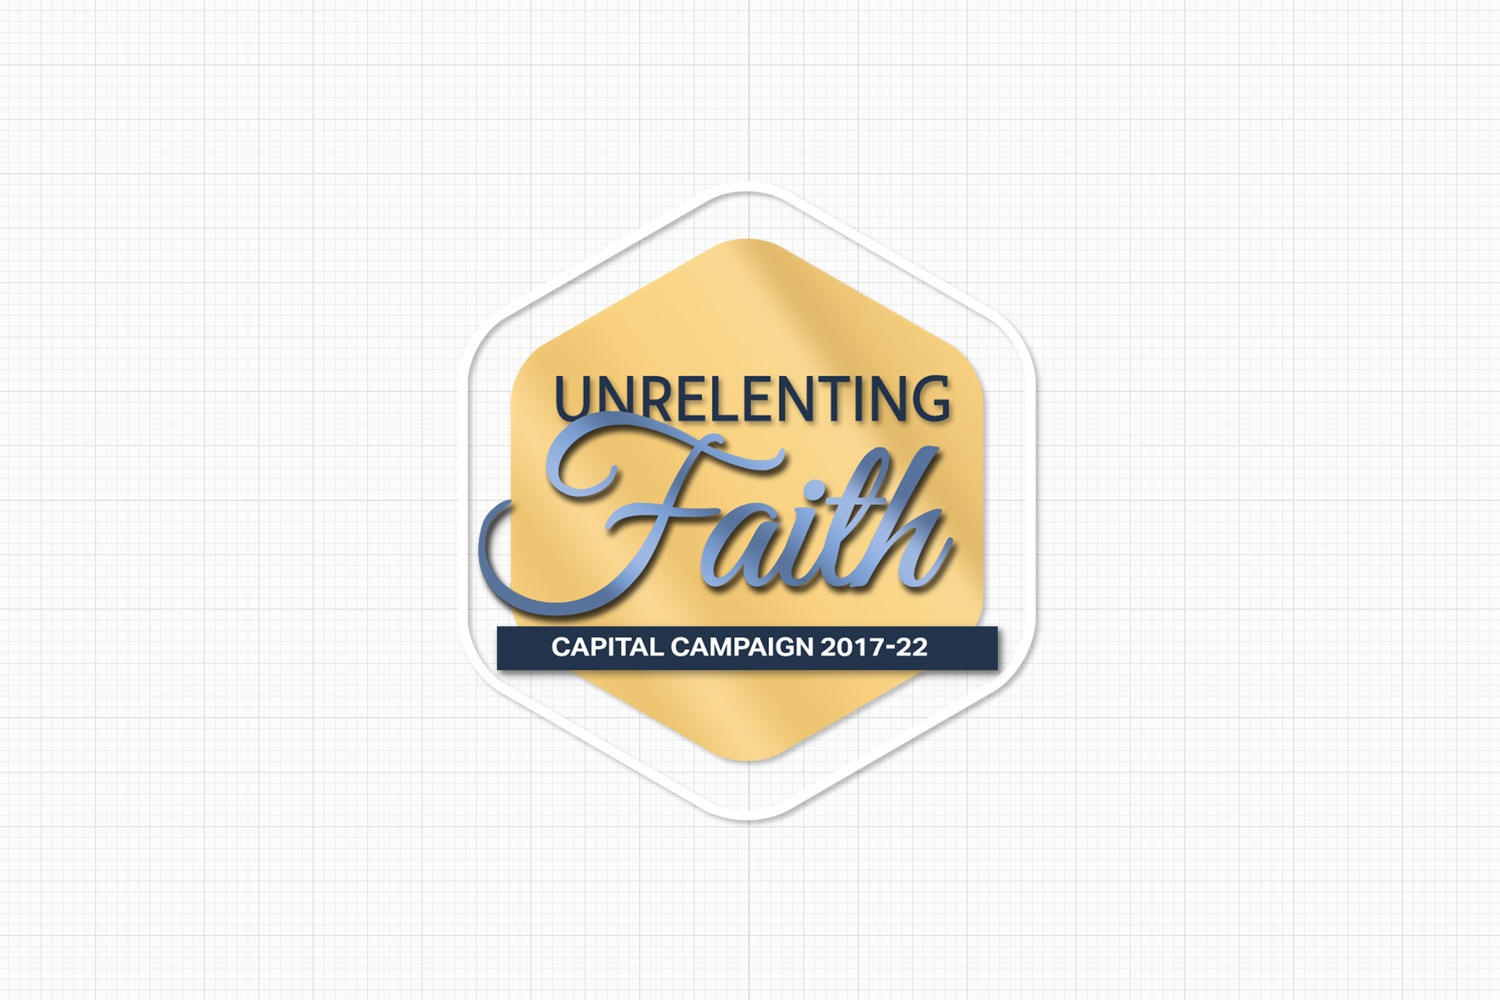 glossy church campaign slogan logo for stewardship ideas examples